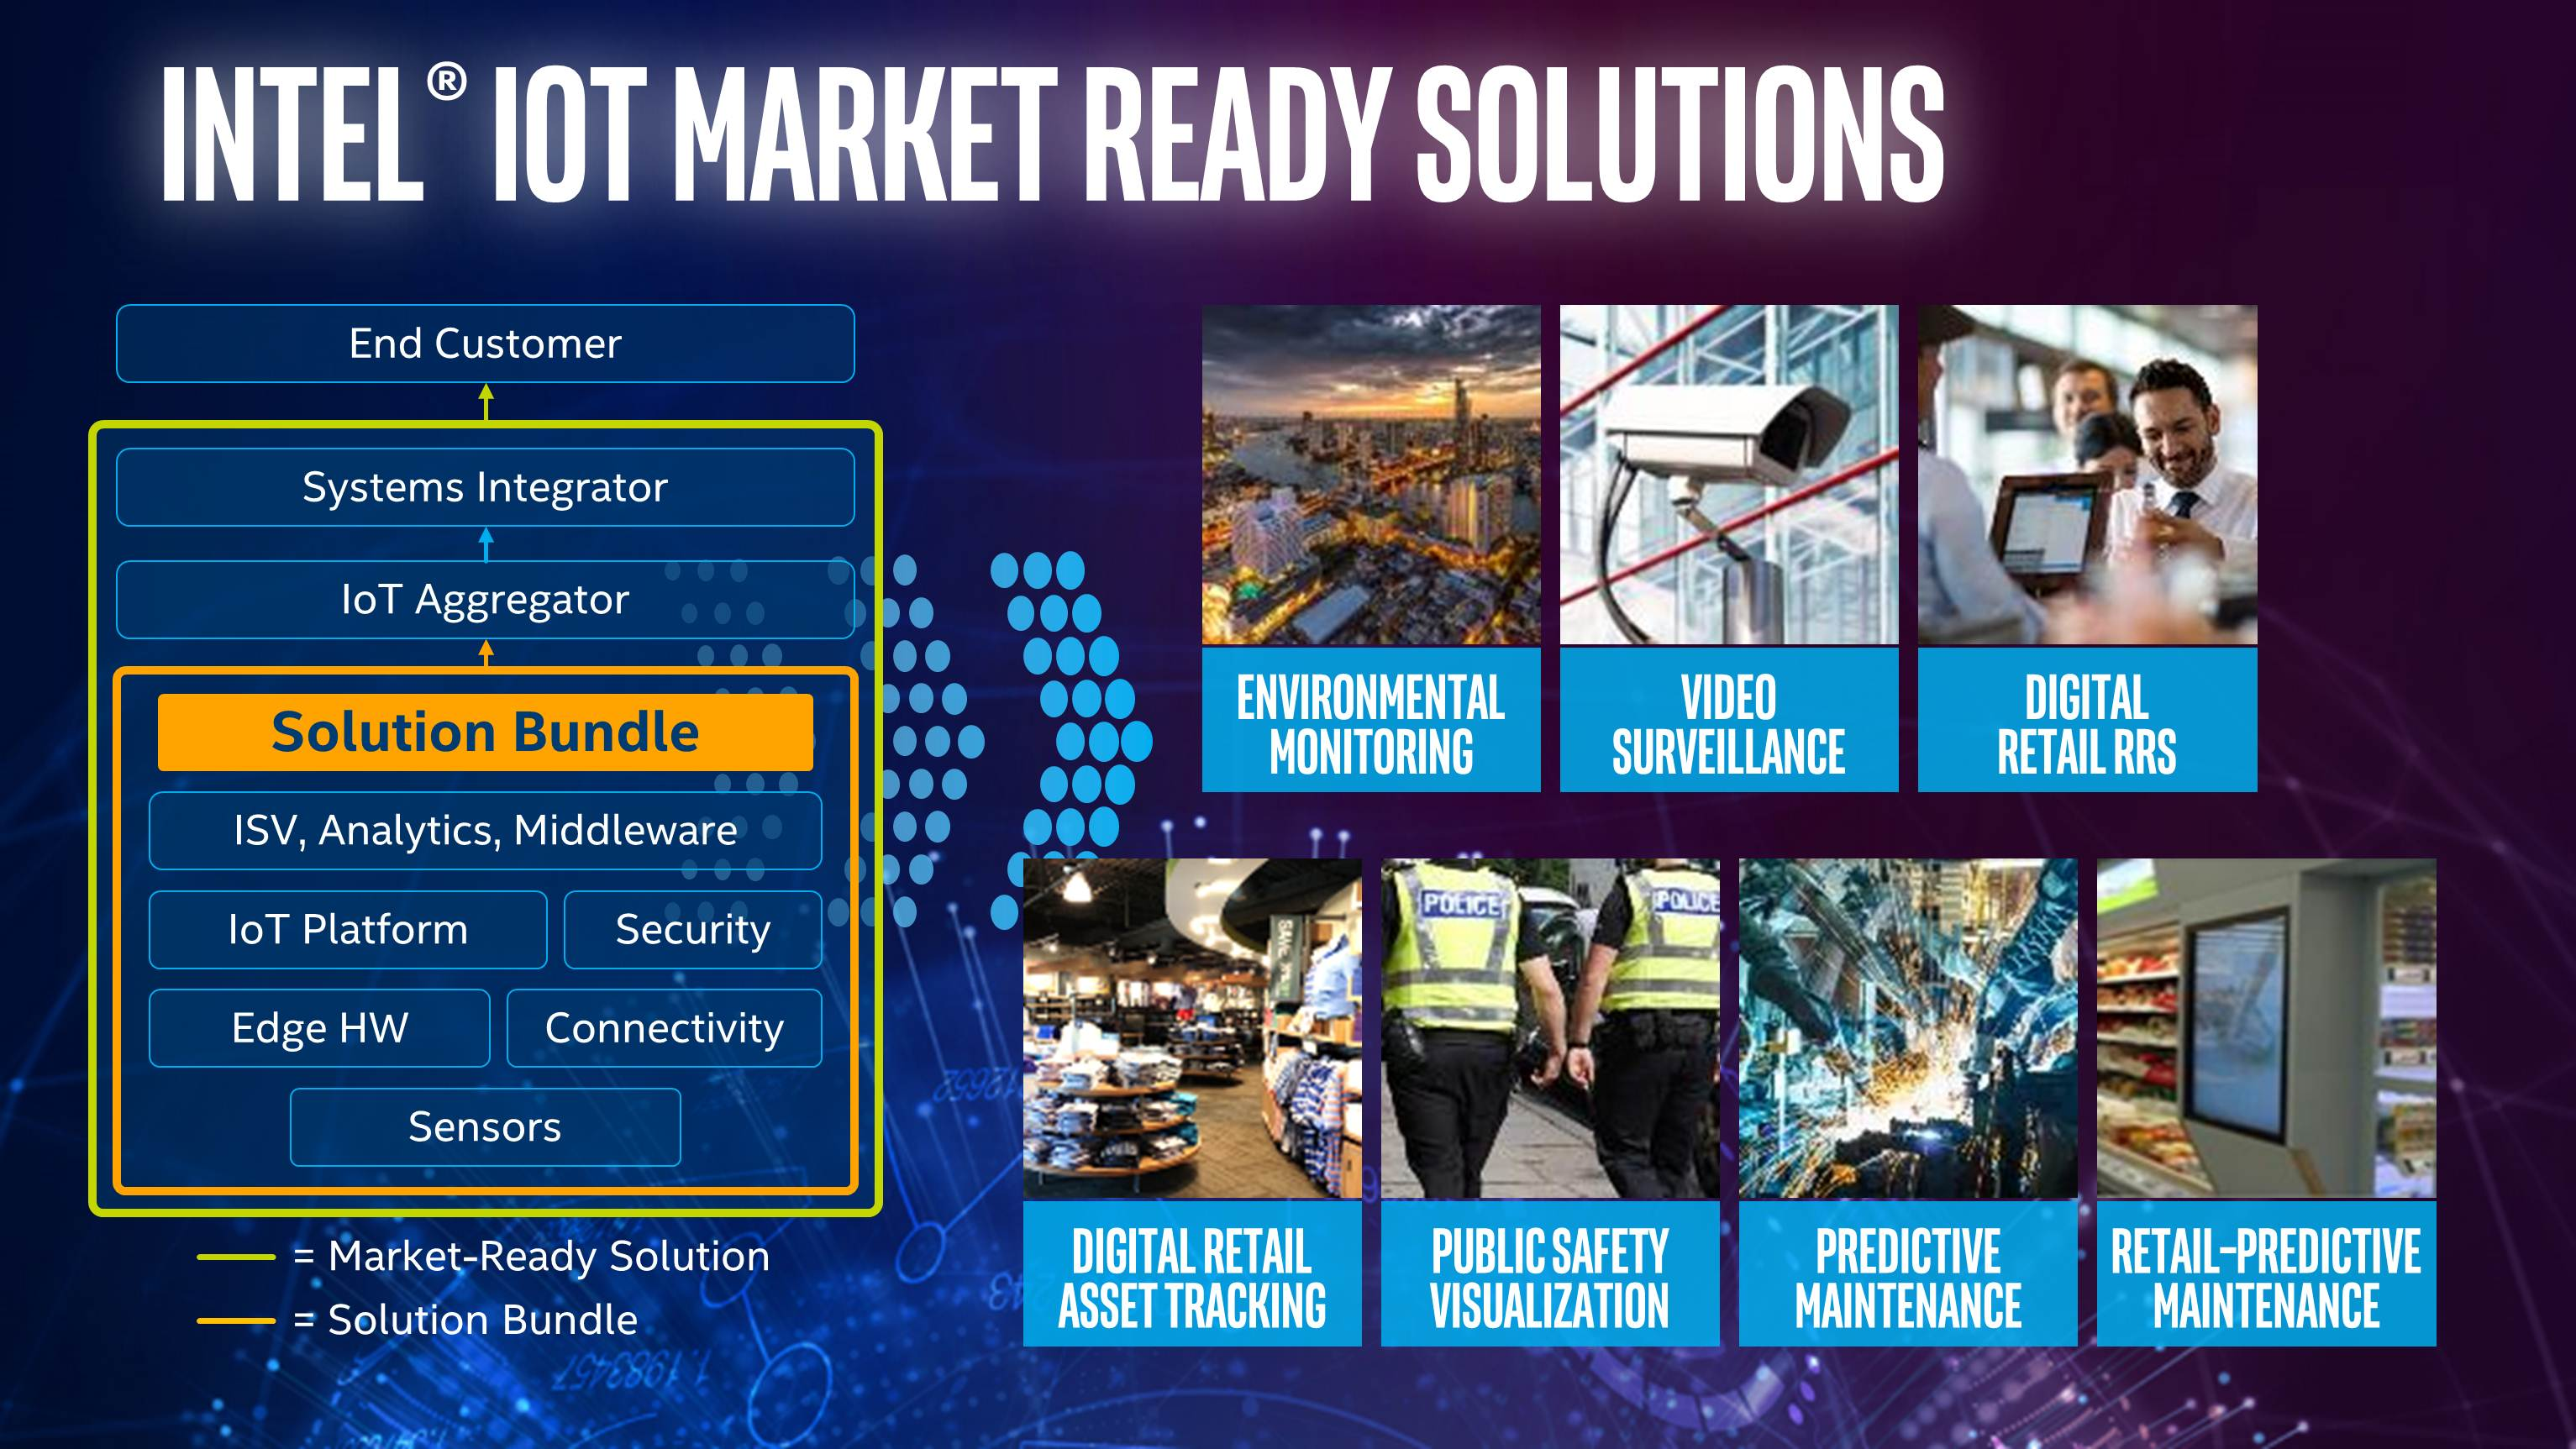 IoT Market Ready Solutions